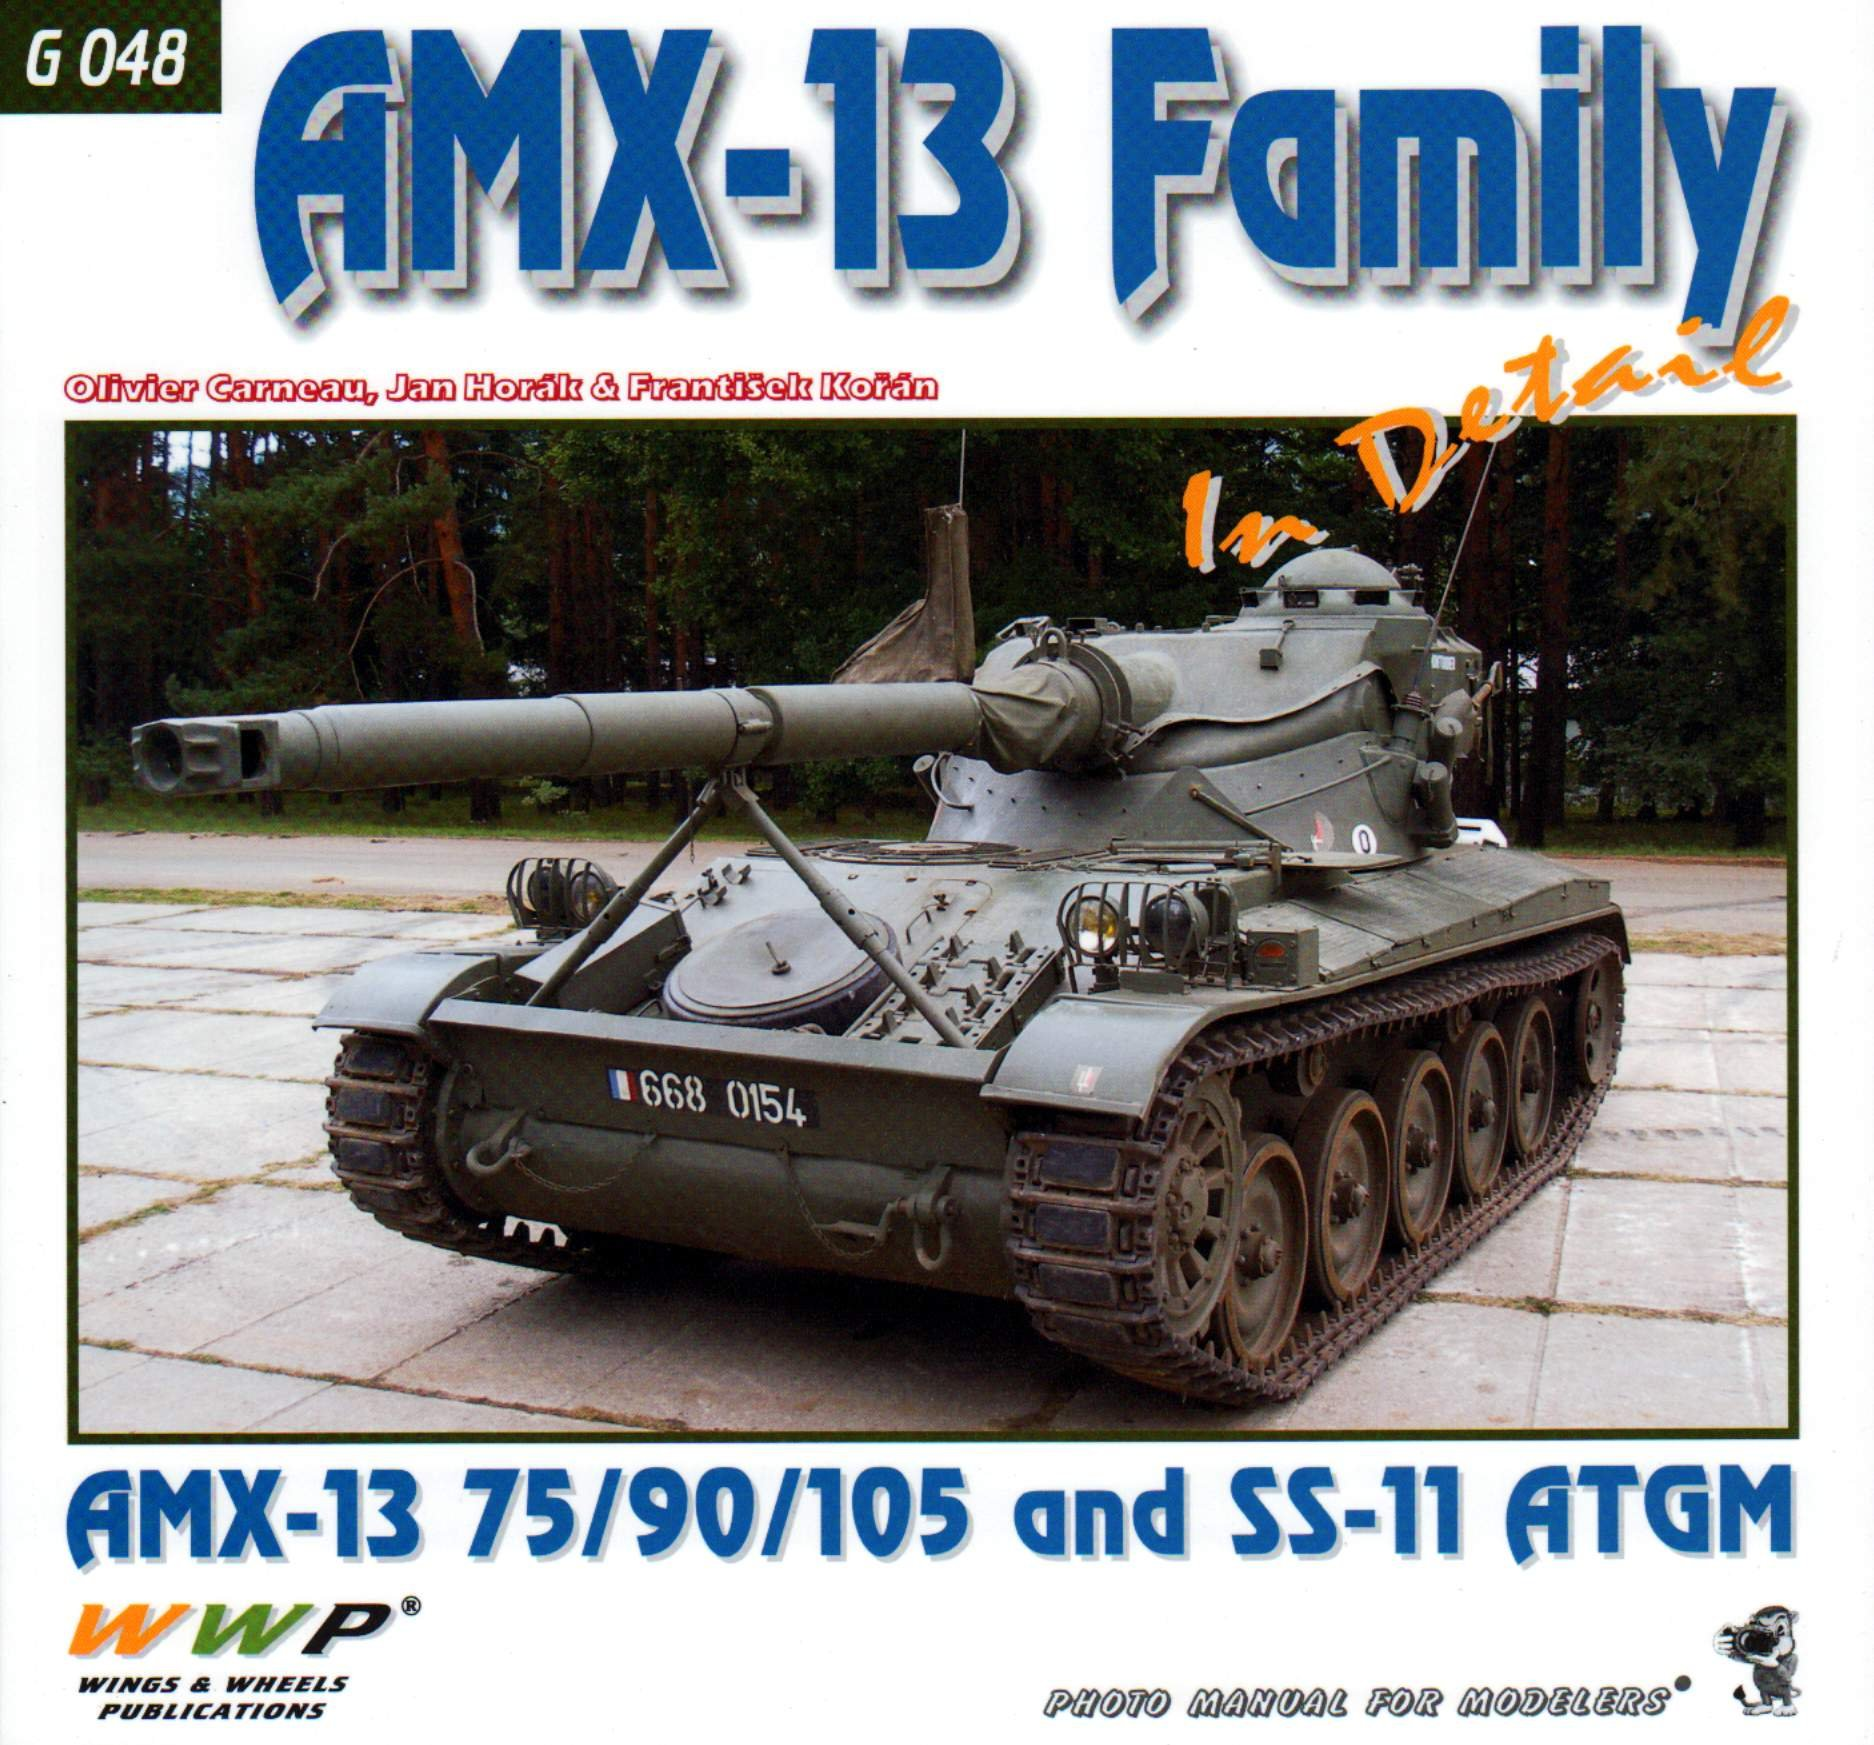 WWPG048 Wings & Wheels Publications - AMX-13 Family (AMX-13 75/90